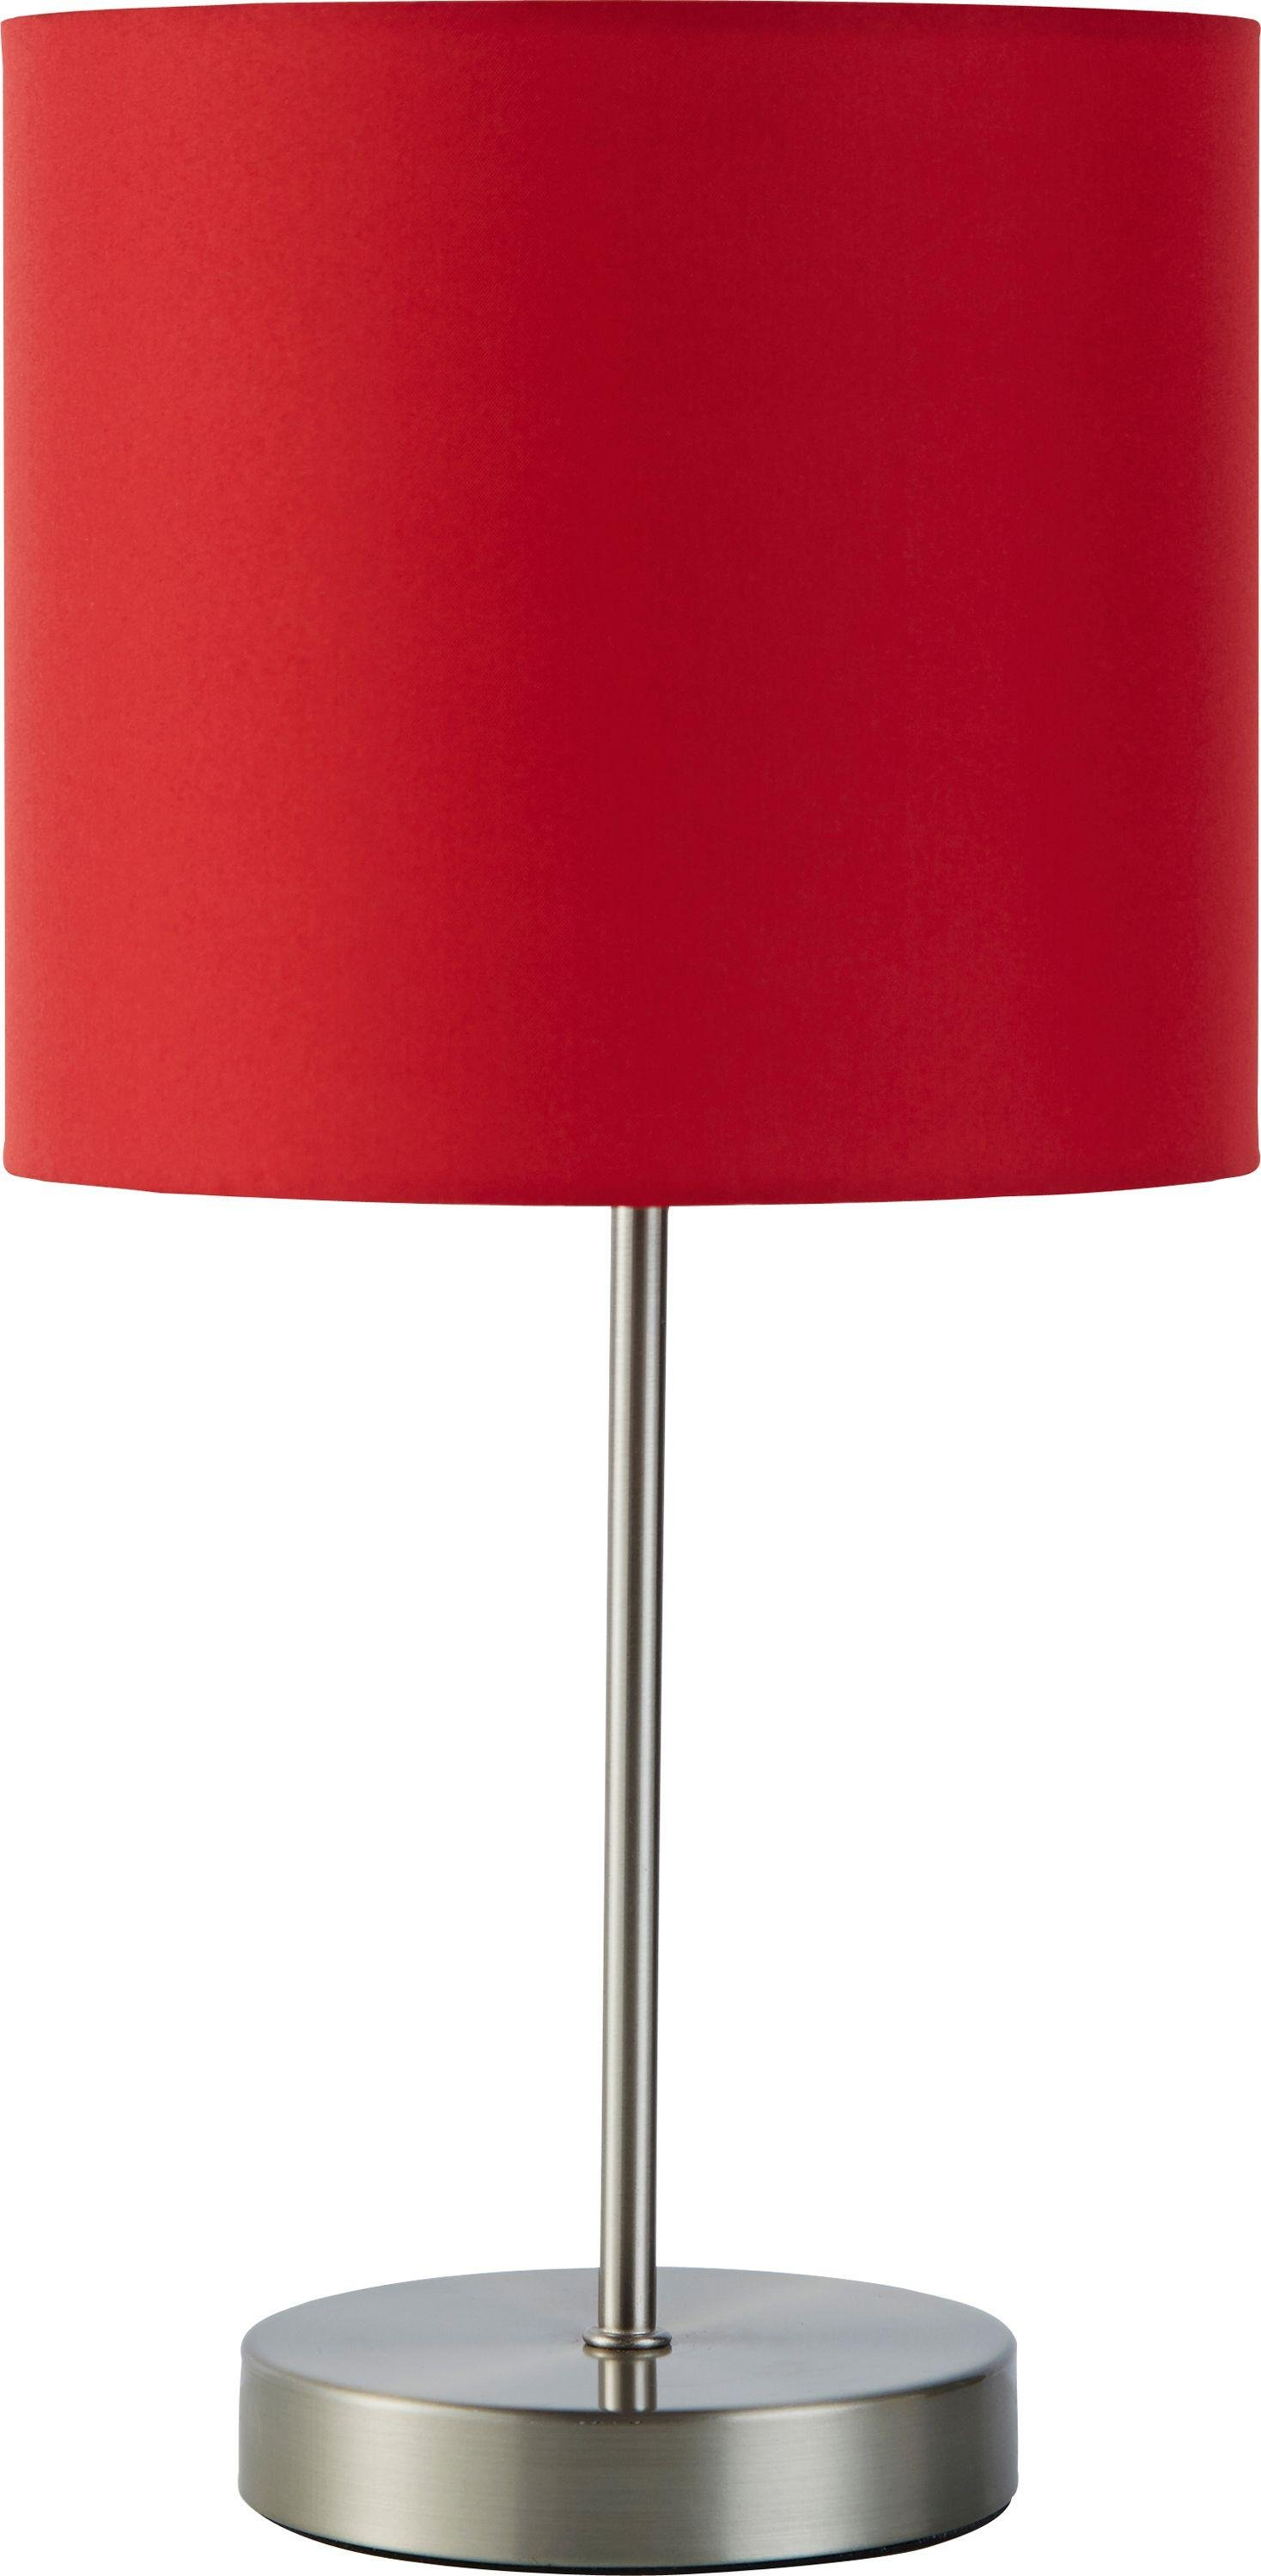 Image of ColourMatch - Satin Stick - Table Lamp - Poppy Red